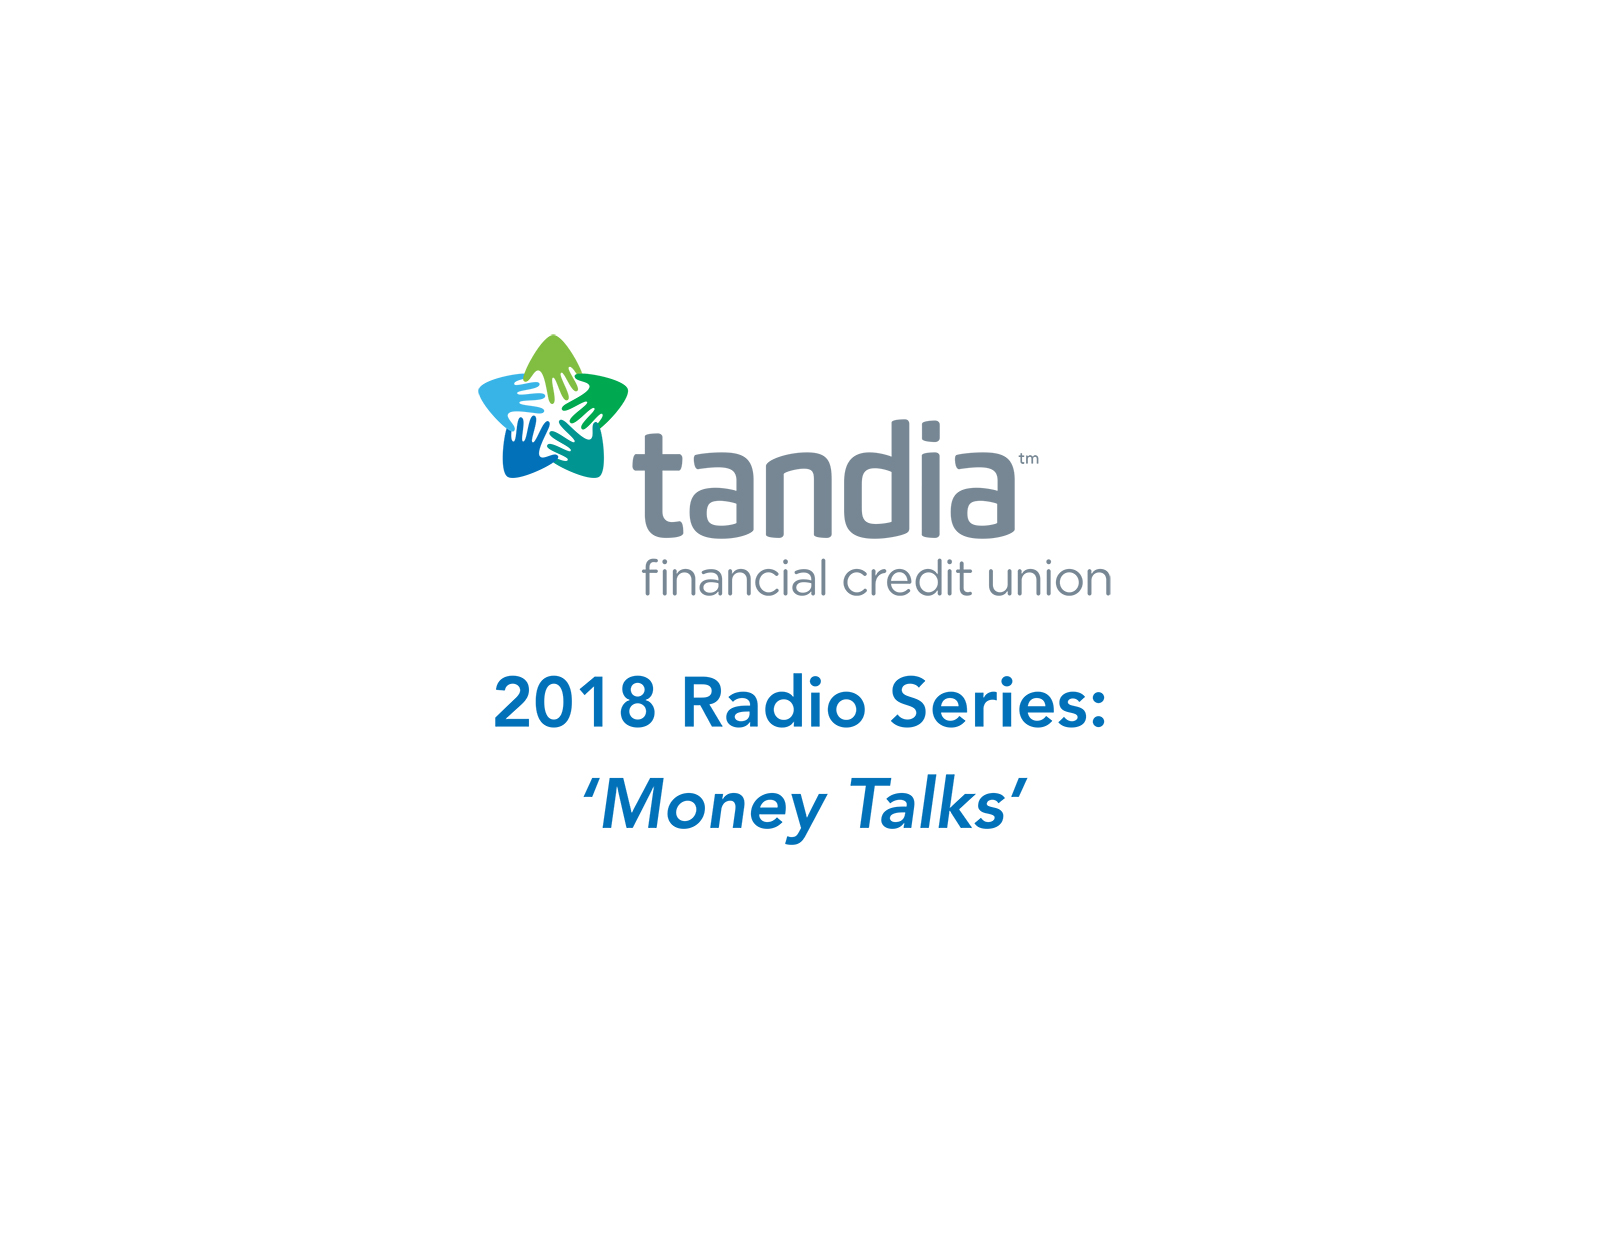 Tandia financial logo - a light blue, dark blue and green star.